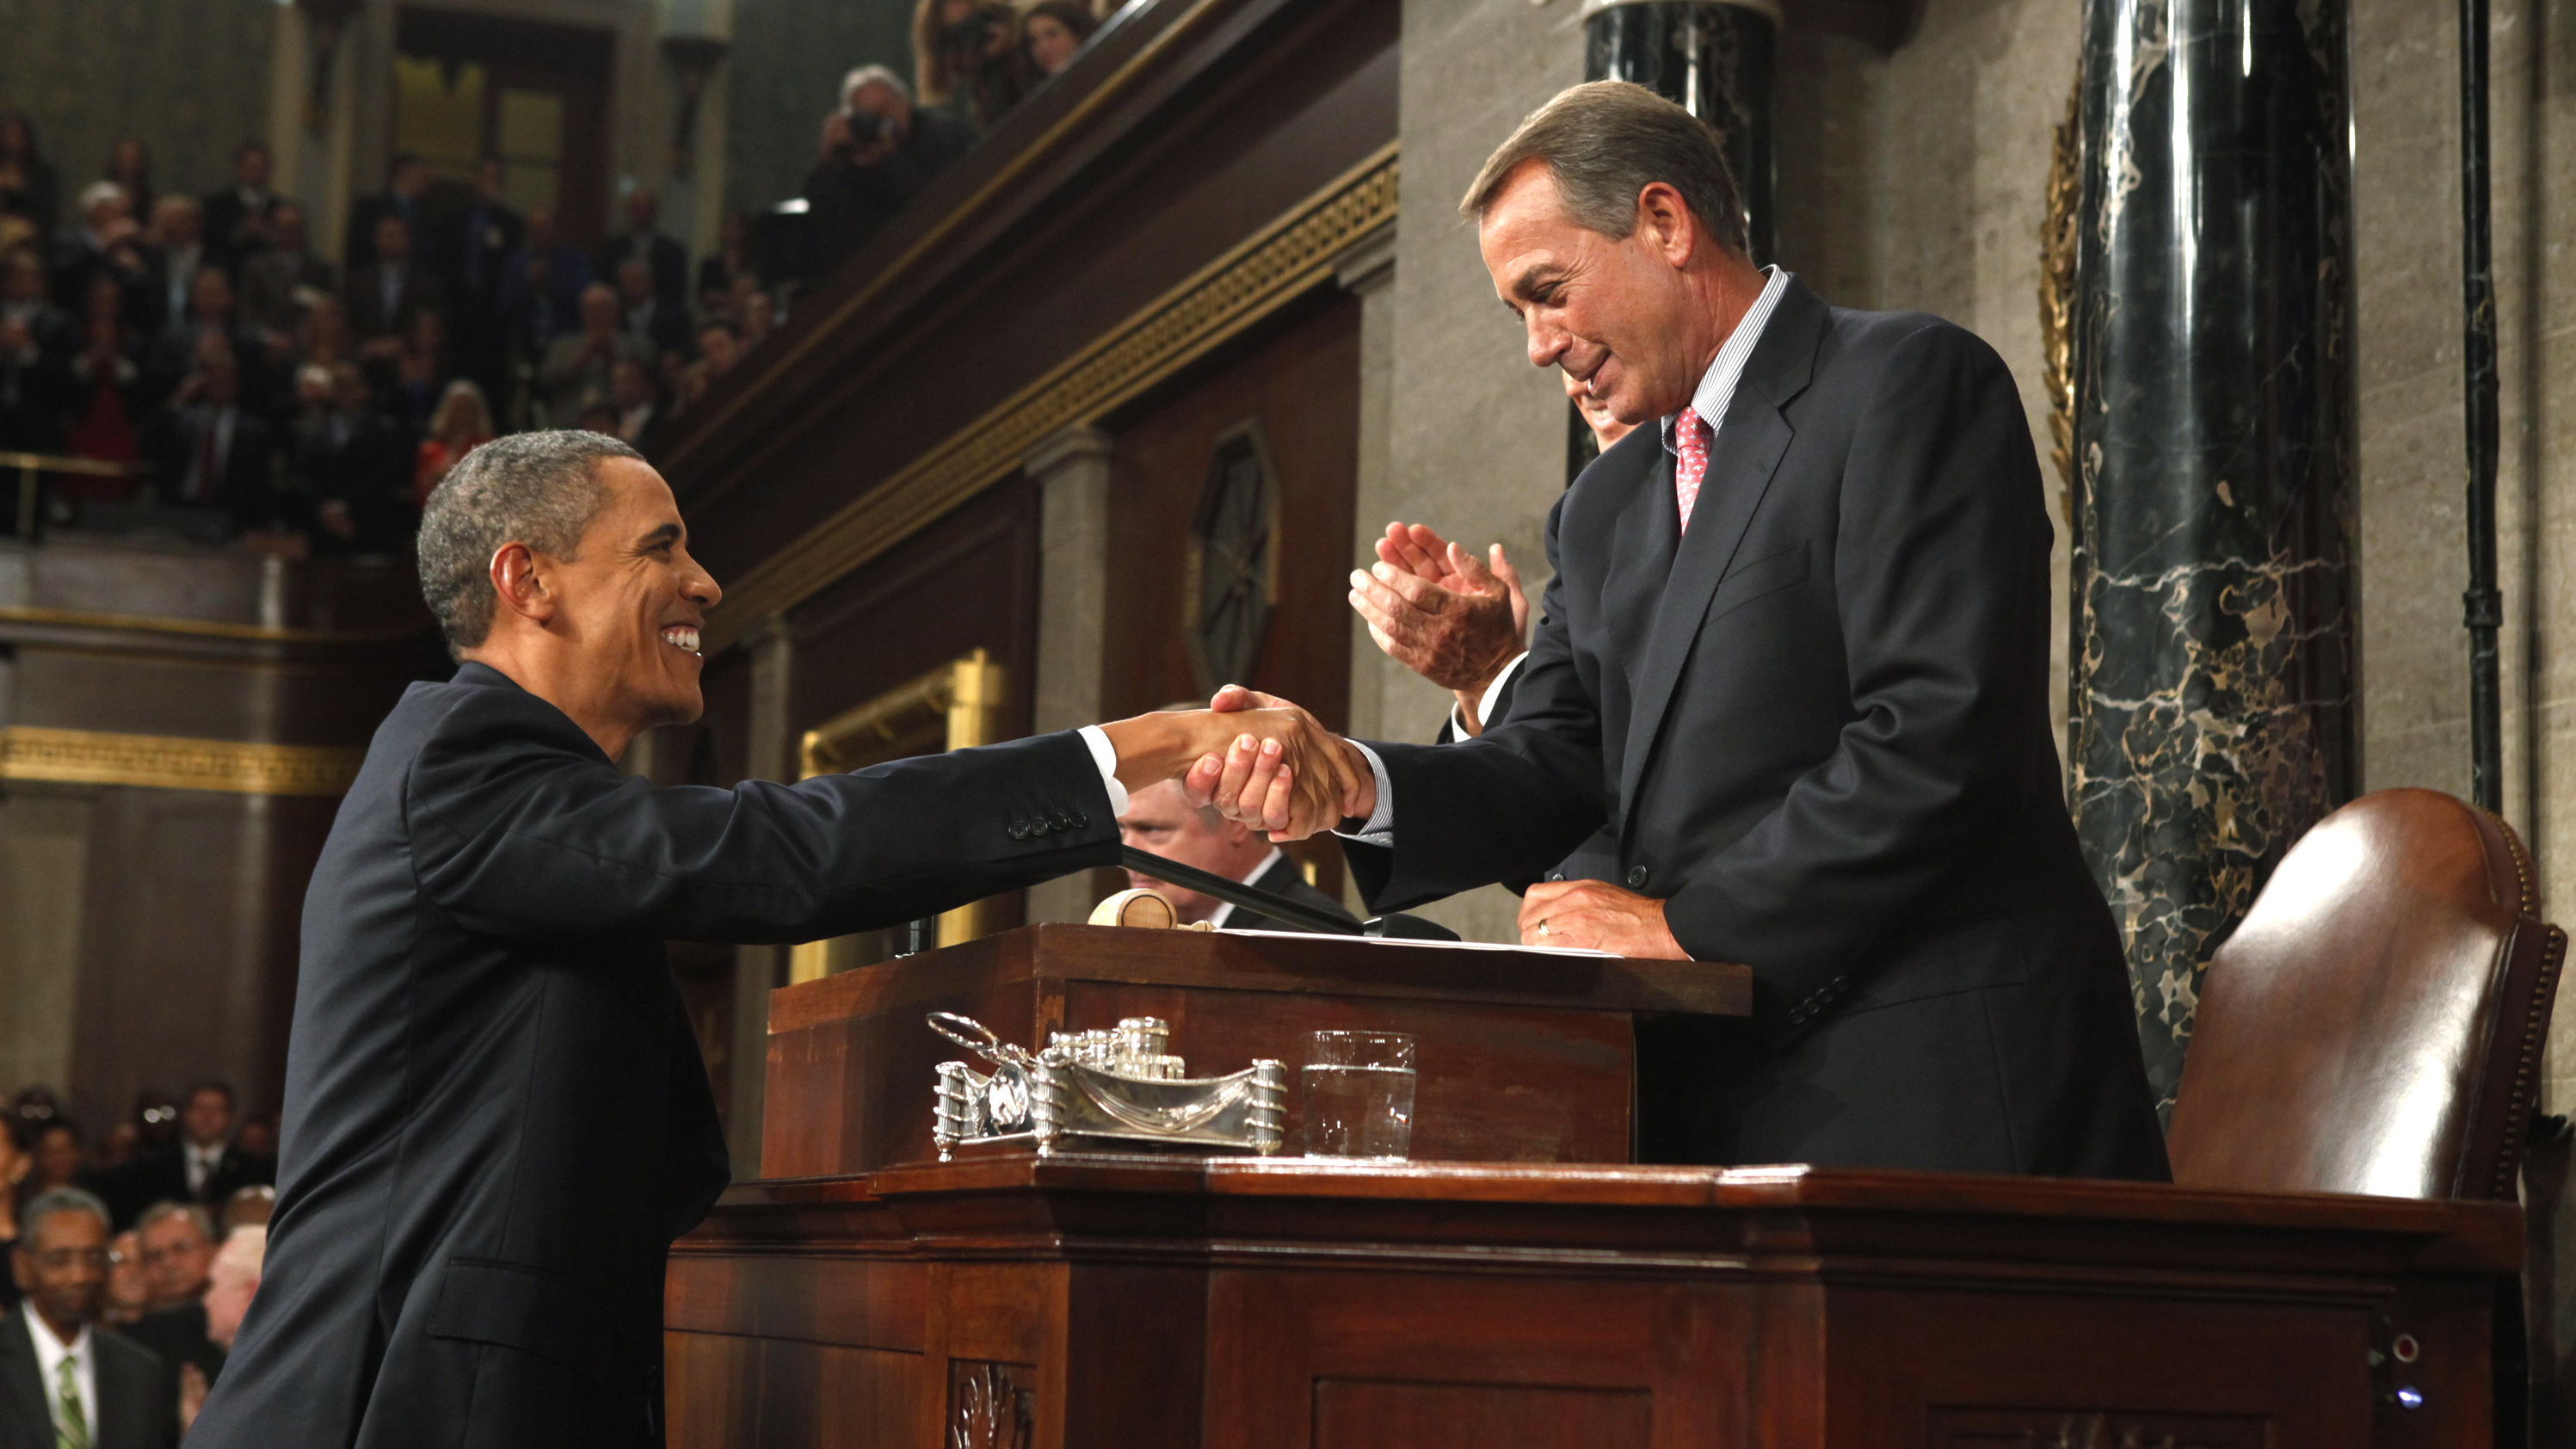 President Obama shakes Speaker John Boehner's hand before the start of a 2011 joint session of Congress. Pool/Getty Images